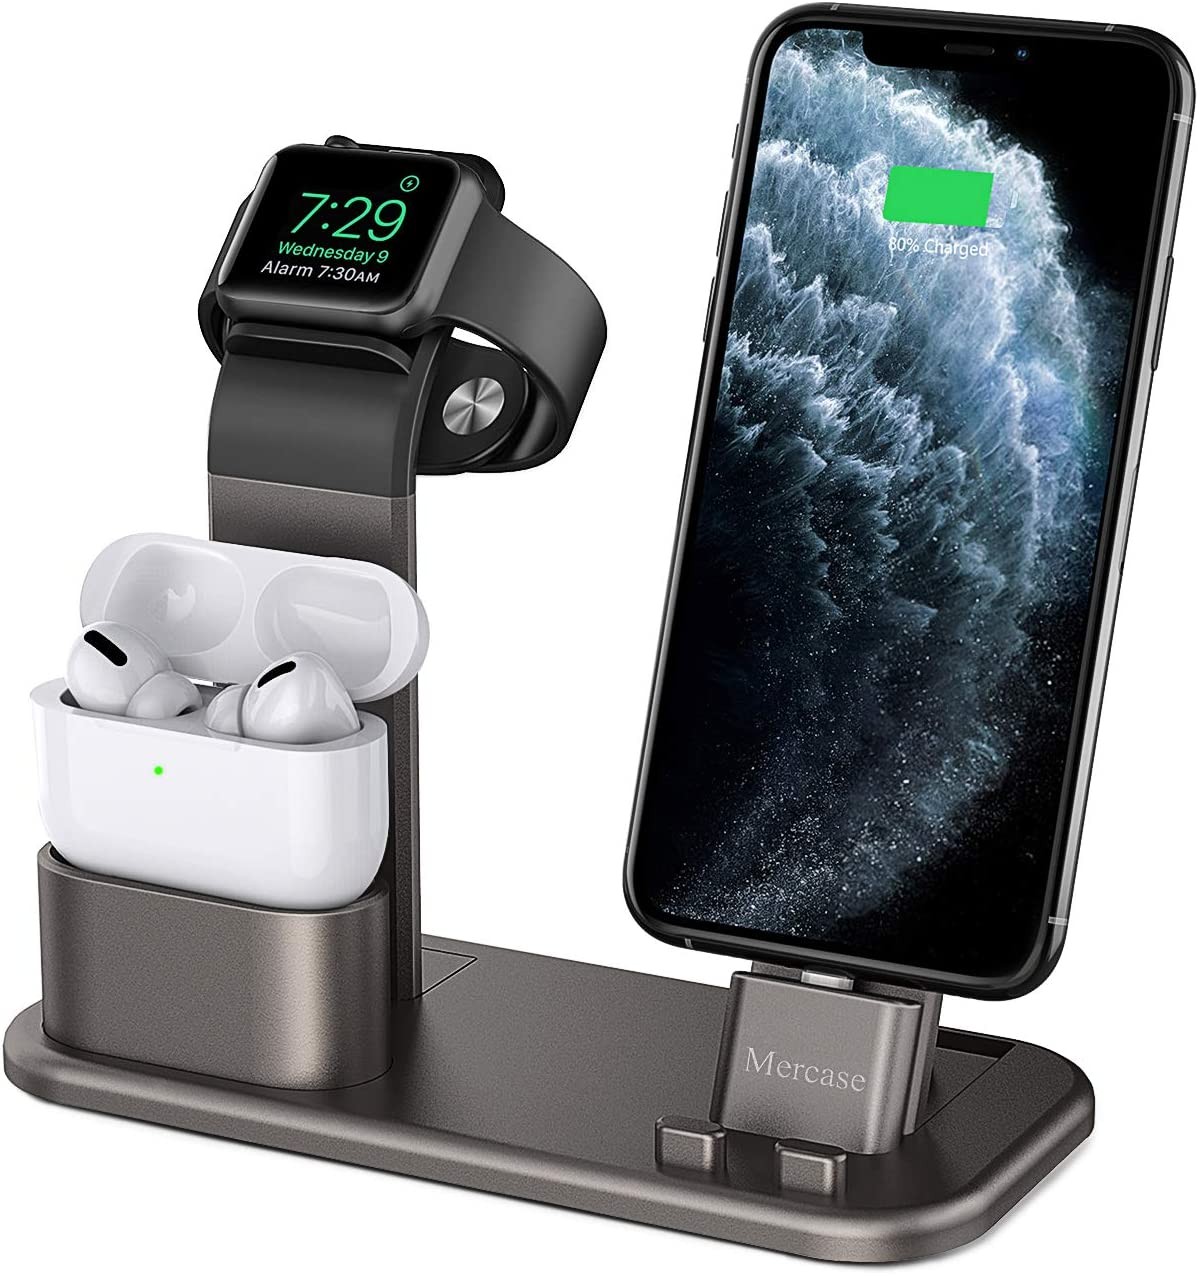 Mercae Compatible for Charging Station Apple 3 in 1 Aluminum Stand for Apple Watch/iPhone and Airpods Pro,Charger Stand Dock Station for Apple iWatch Series 1/2/3/4/5/6/SE iPhone 11/11 Pro/Pro MAX